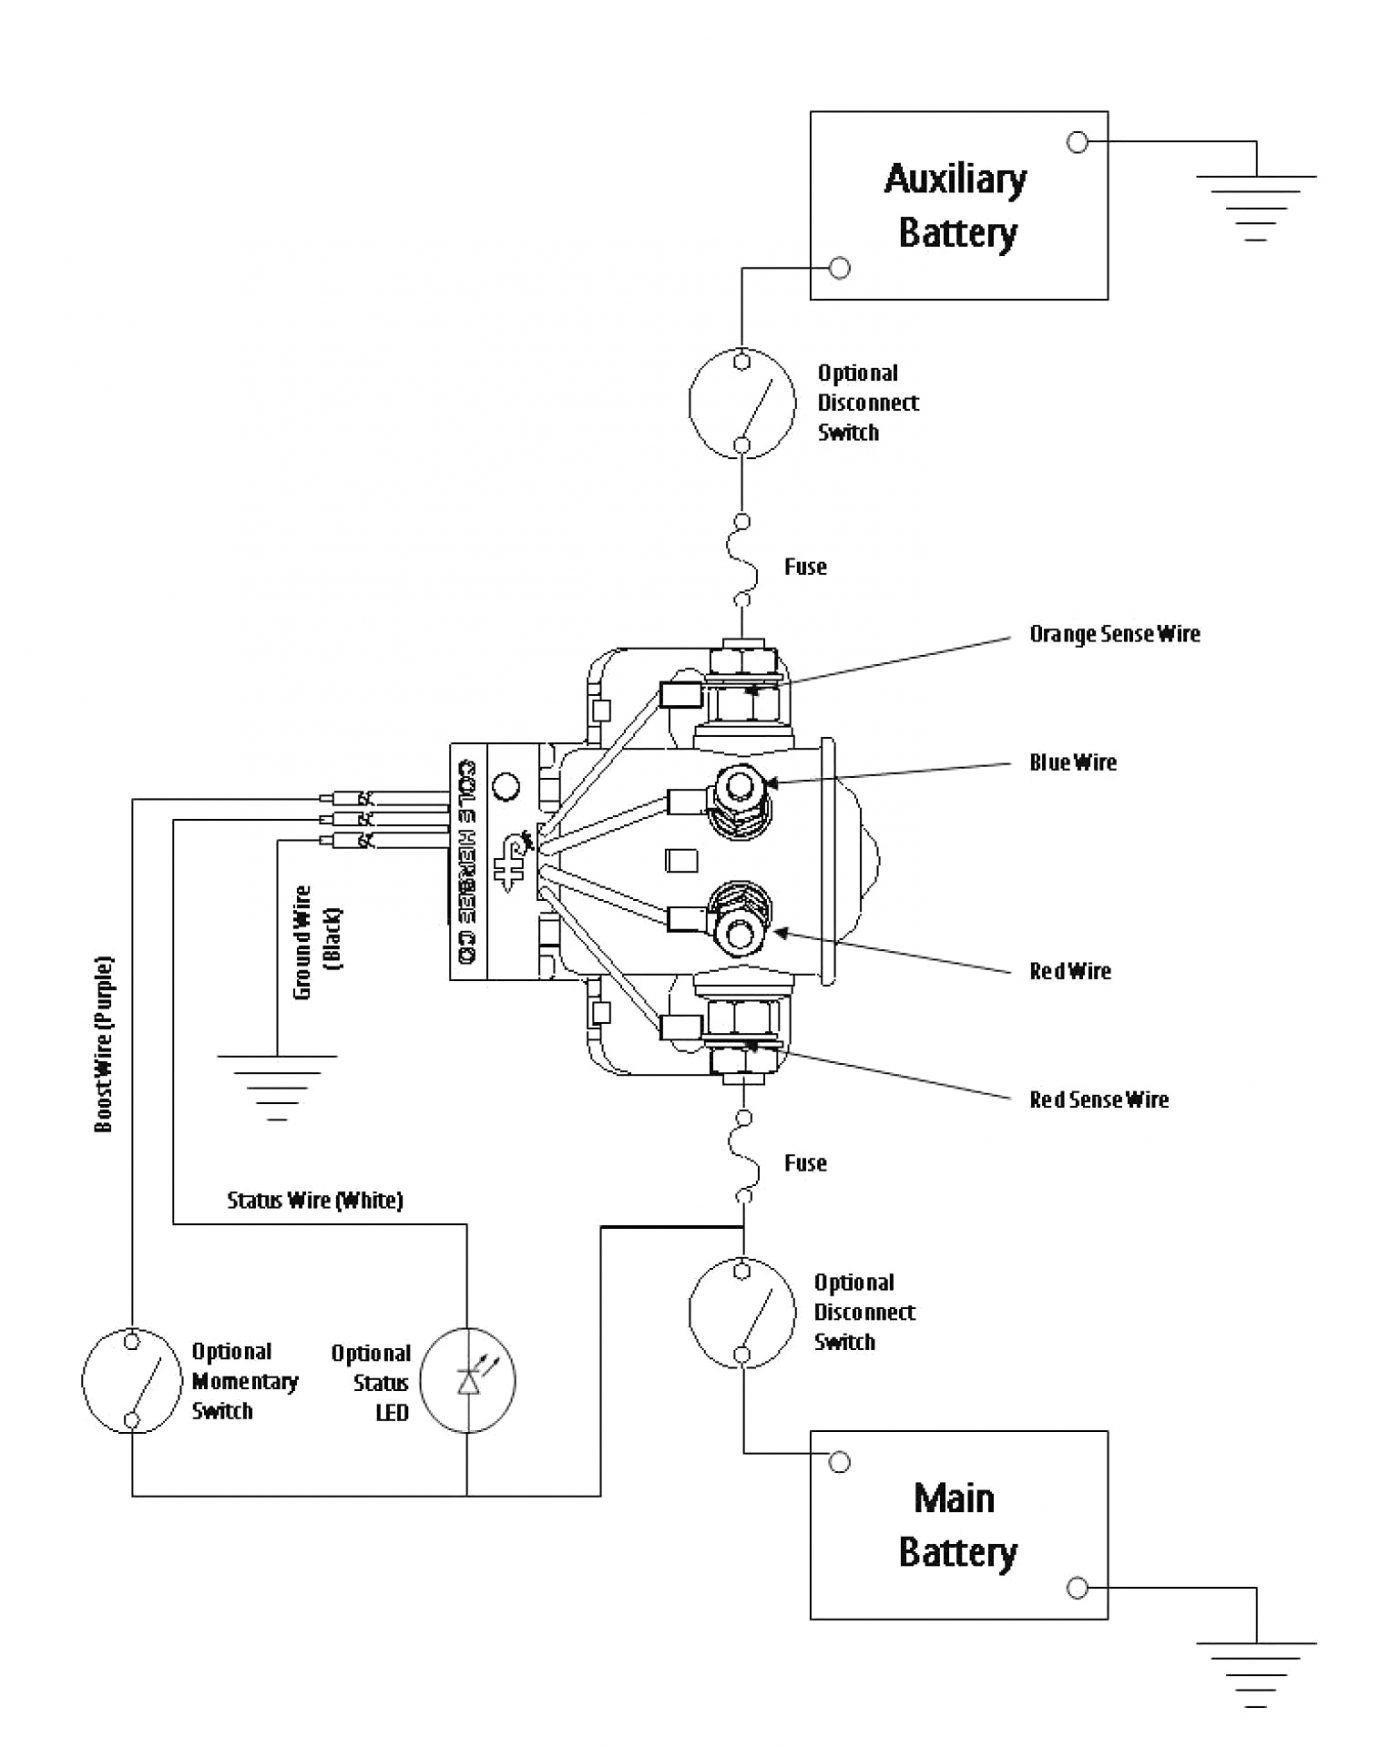 Rv Battery Disconnect Switch Wiring Diagram | Switch Wiring Diagram - 5 Wire Thermostat Wiring Diagram